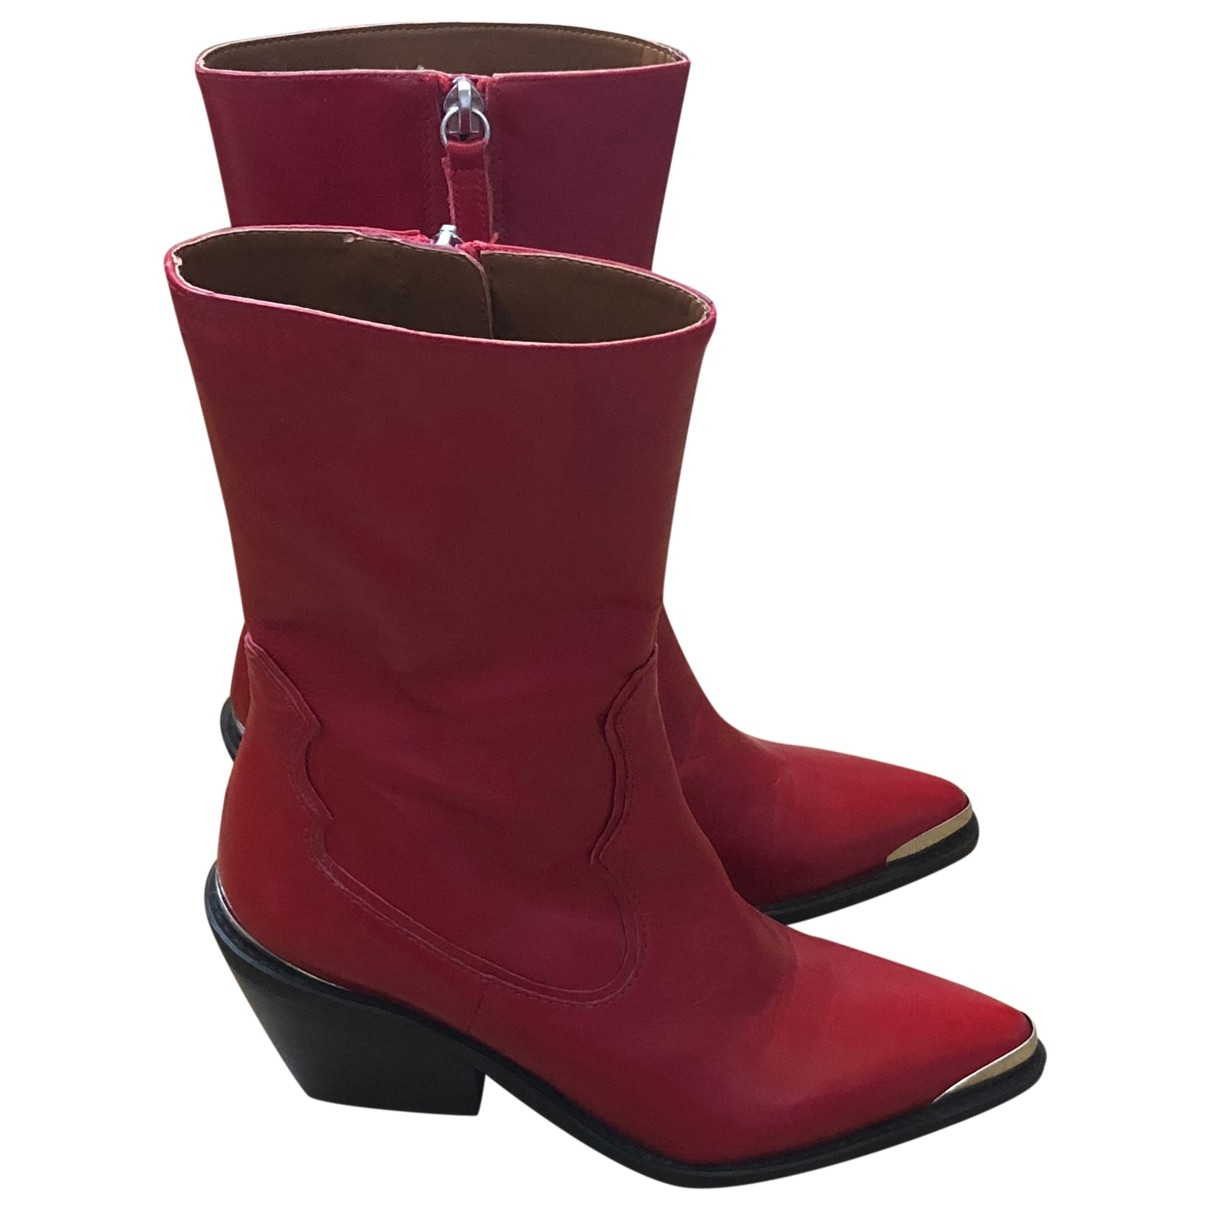 Zara \N Red Leather Boots for Women 37 EU